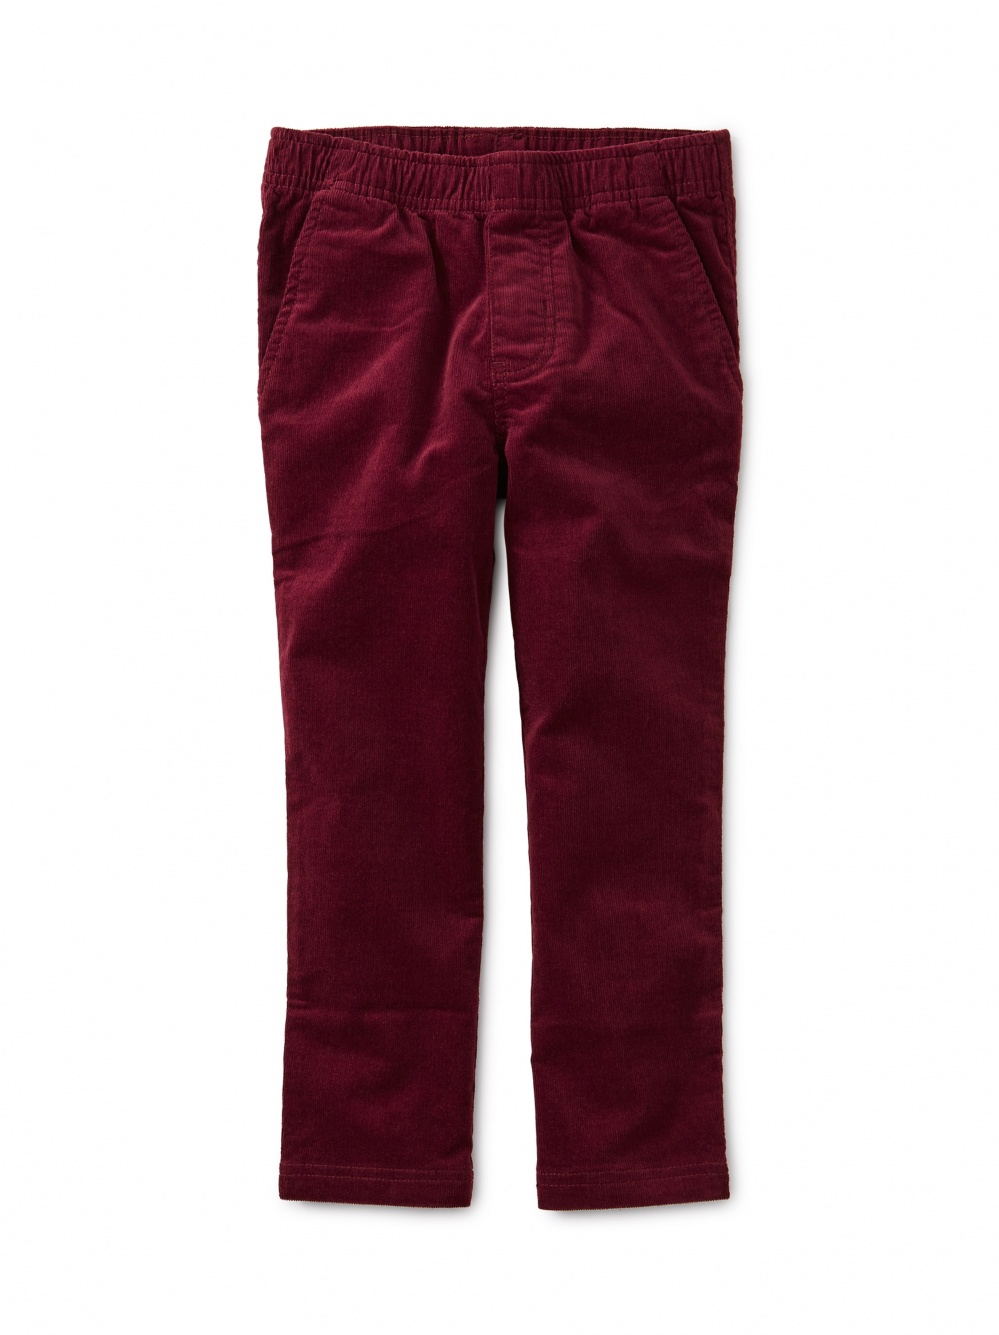 Slim Fit Corduroy Pant